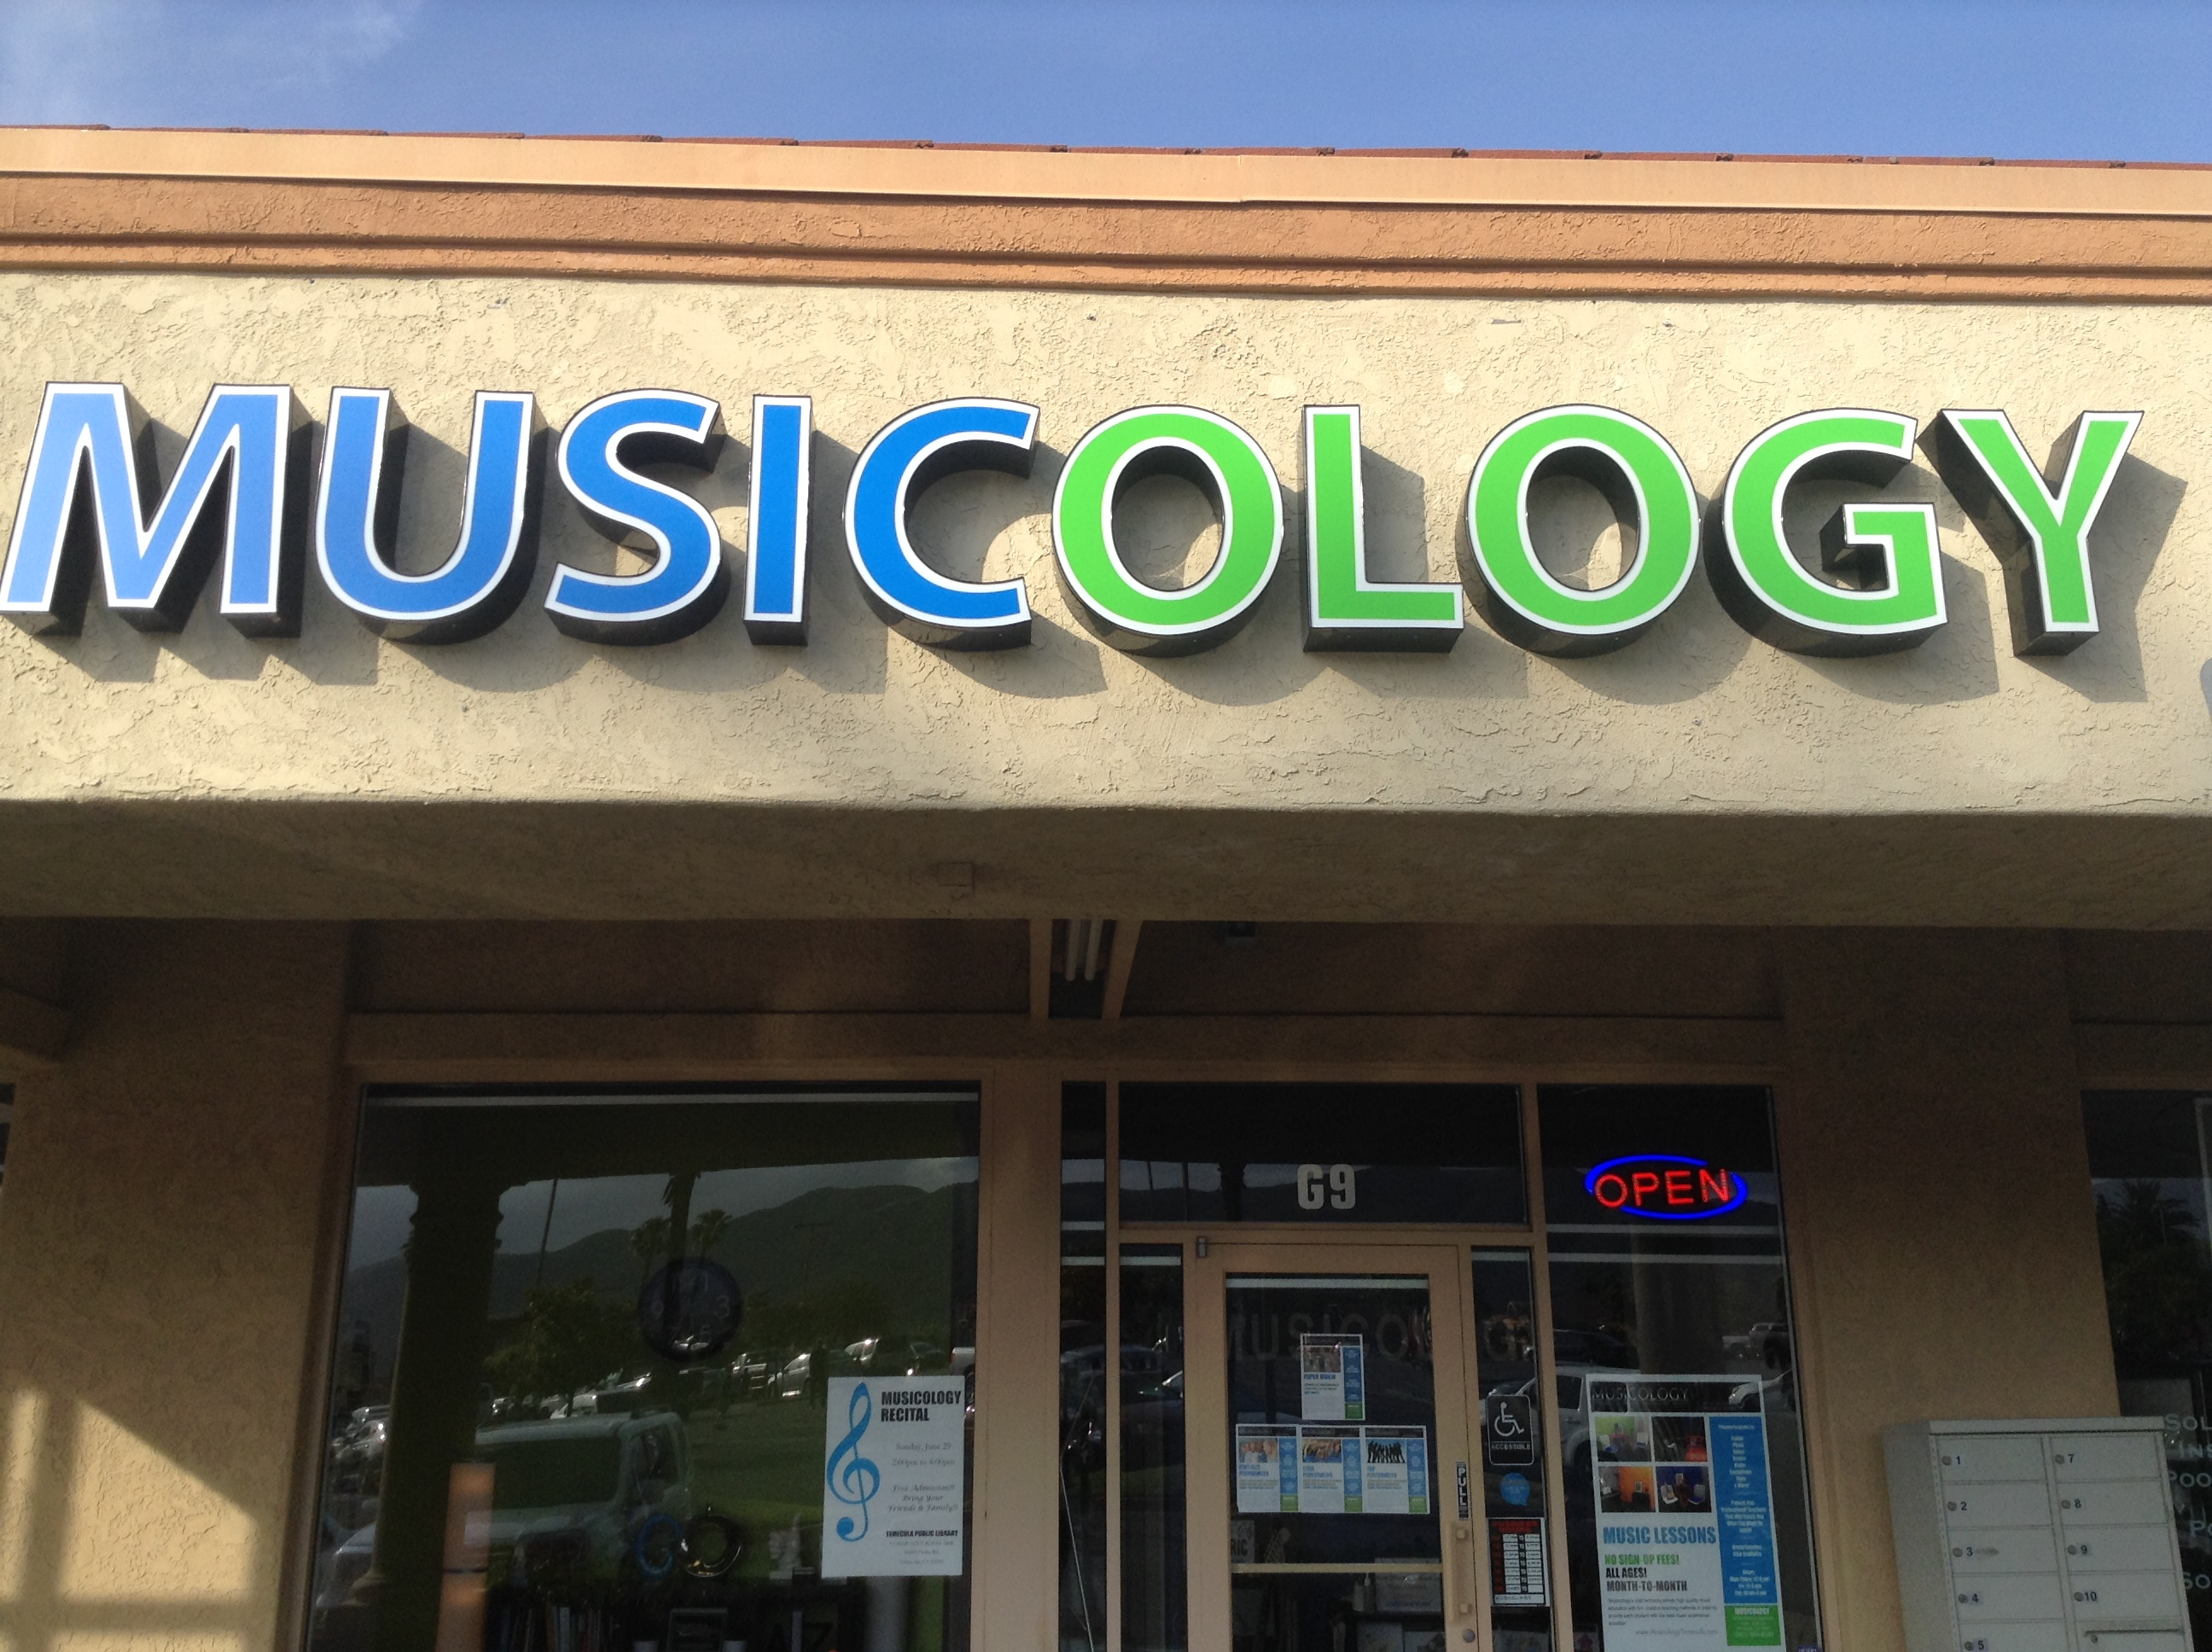 Musicology's is located in Temecula, CA